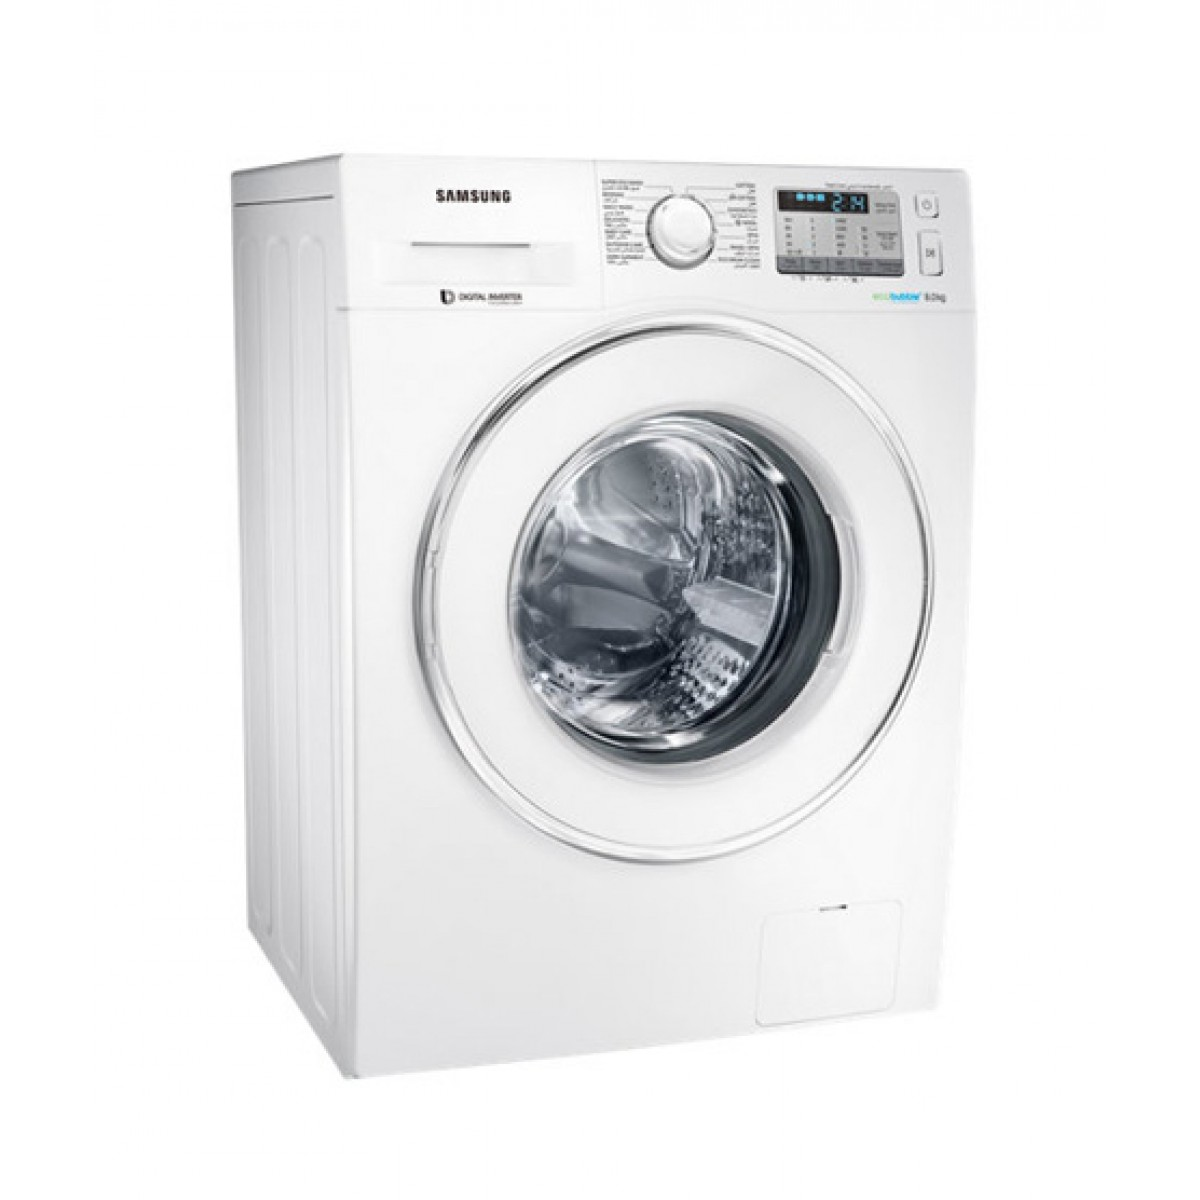 Samsung Fully-Automatic Front Load Washing Machine WW80J5413